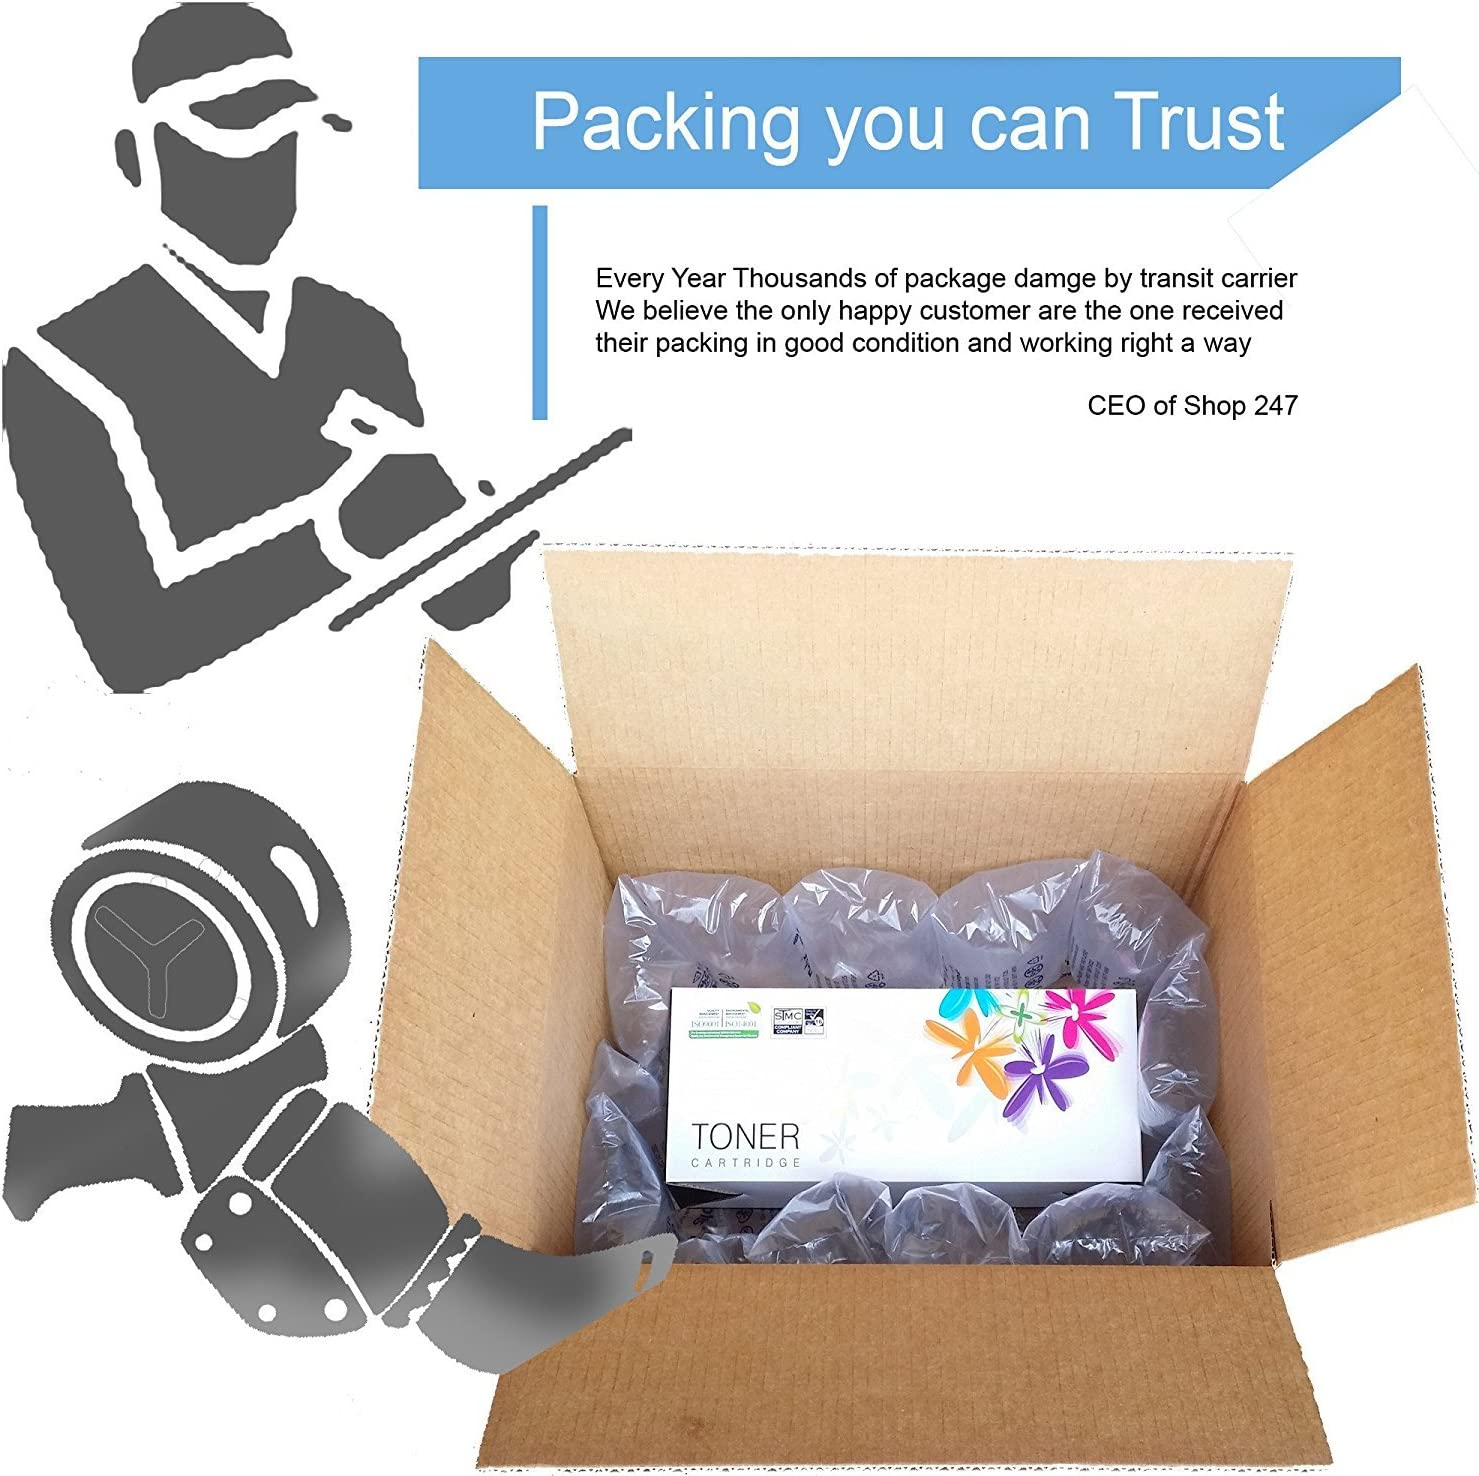 Compatible Toner Cartridge Replacement for HP 124A Q6000A Q6001A Q6002A Q6003A Color Laserjet 1600 2600n 2605dn 2605dtn CM1015 CM1017 MFP 1-Pack Yellow